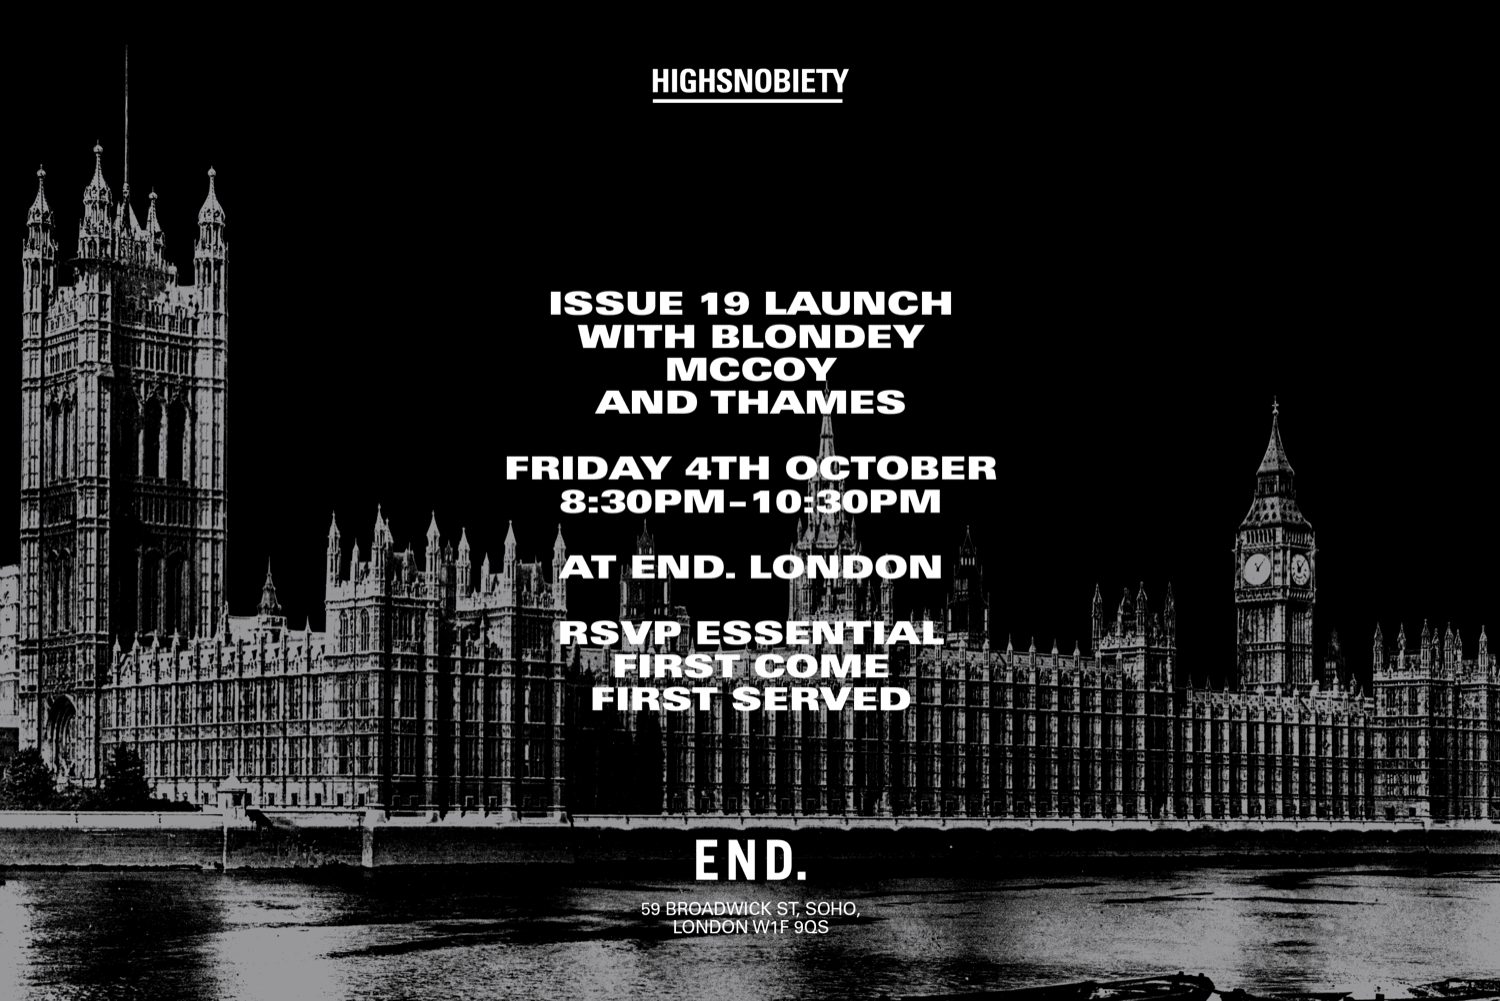 Highsnobiety Issue. 19 launch with Blondey McCoy and Thames at END. London on 4th October.